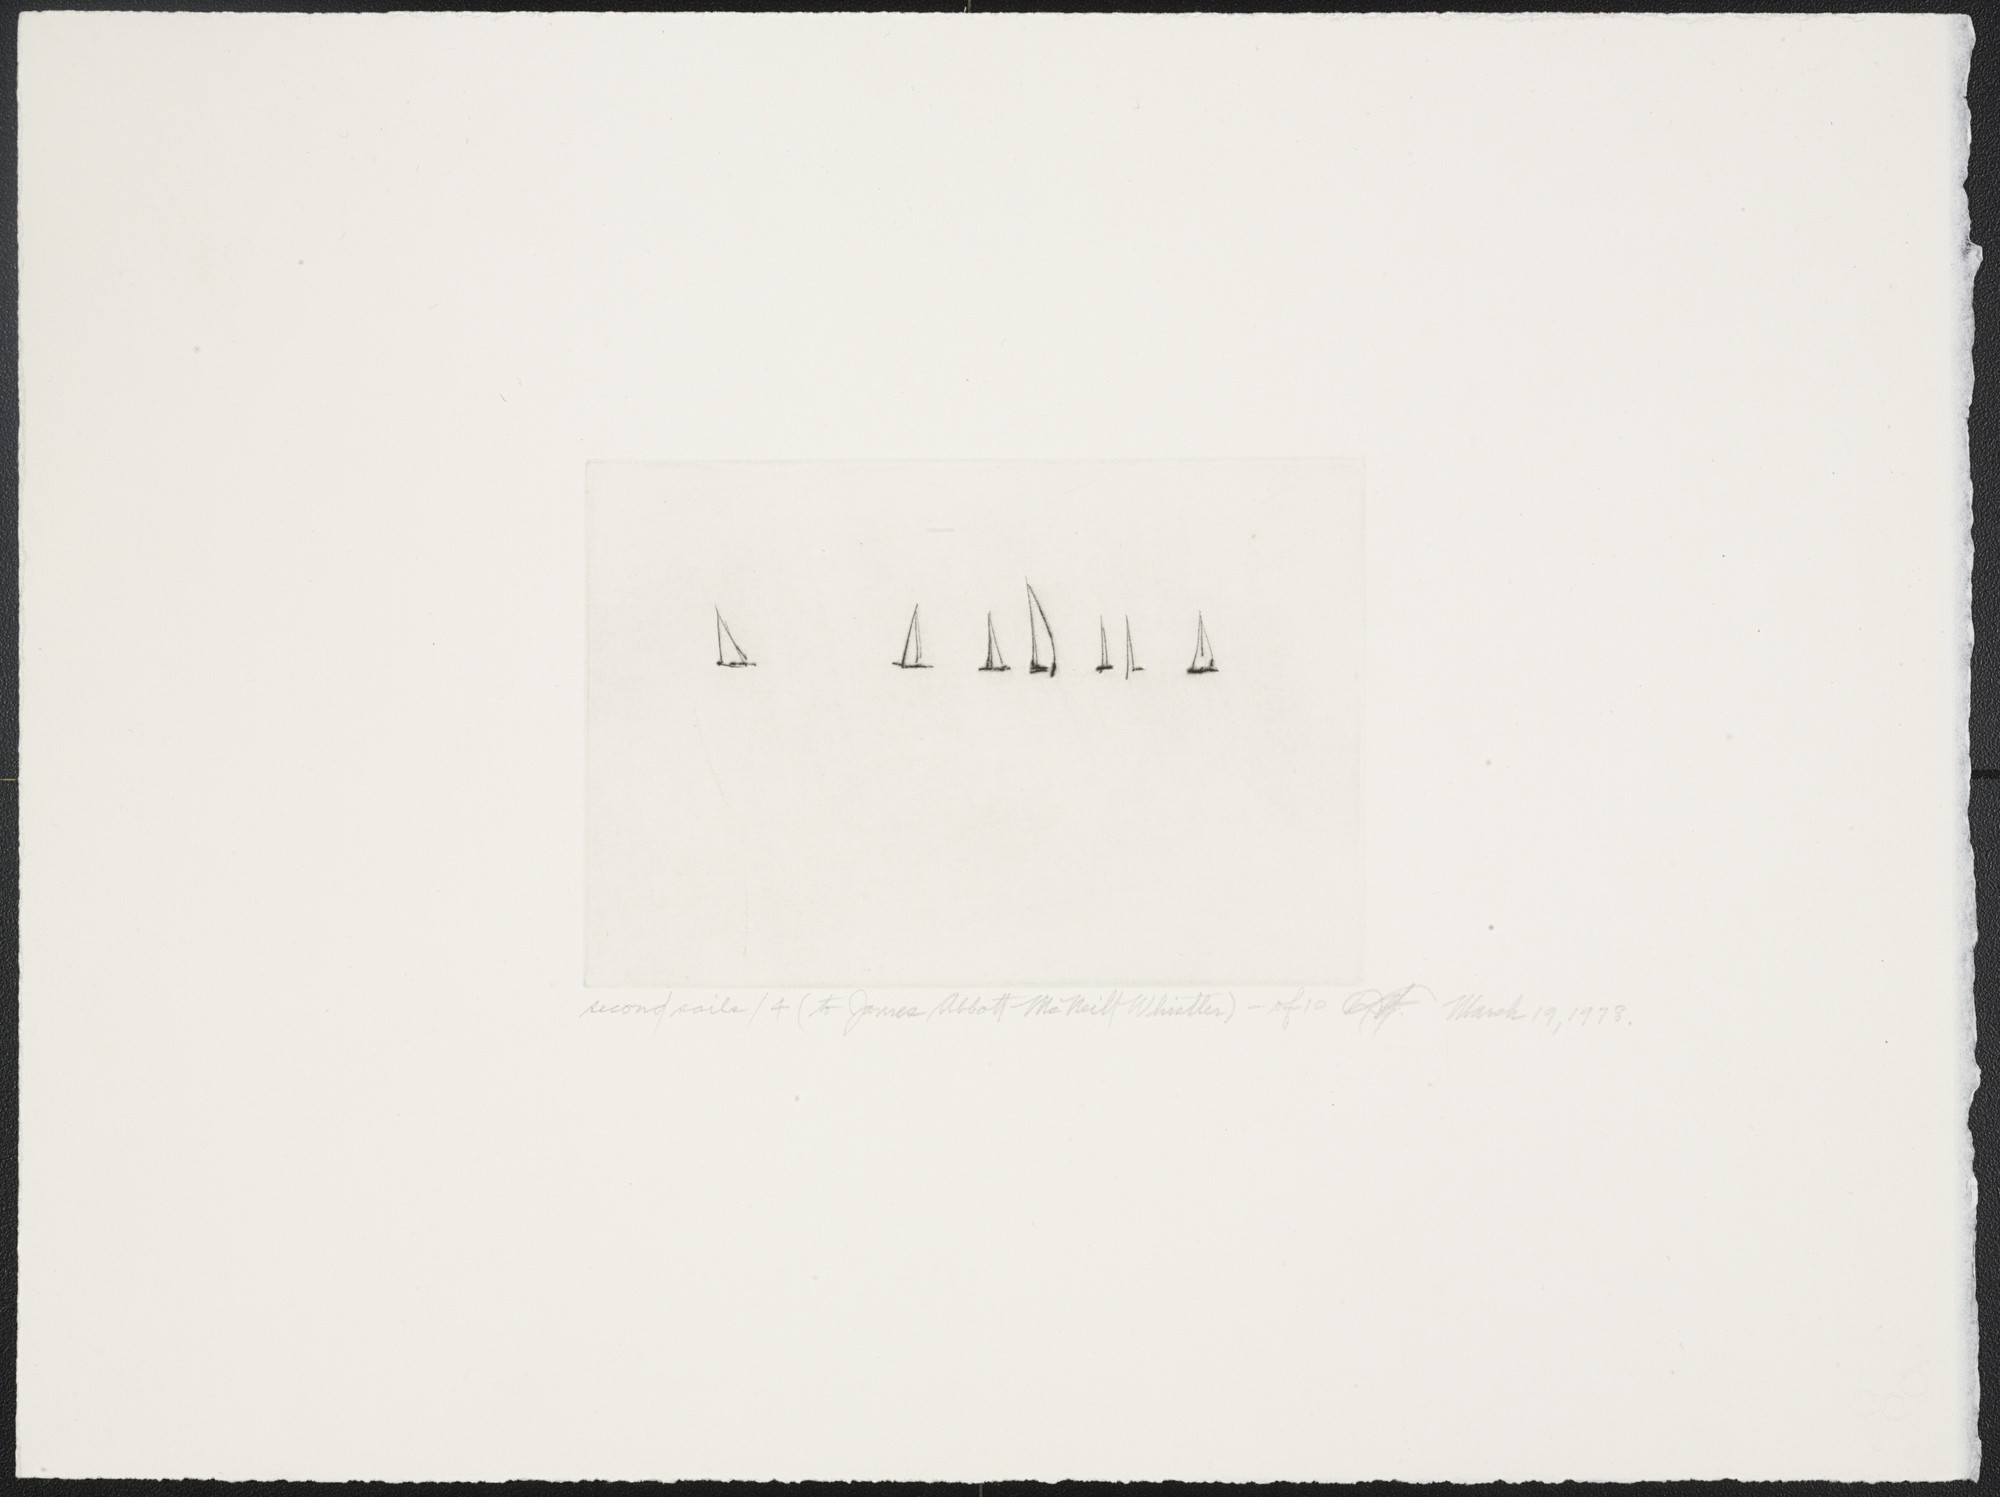 Dan Flavin. Second Sails 4 from Second Sails (To James Abbott McNeill Whistler). 1978